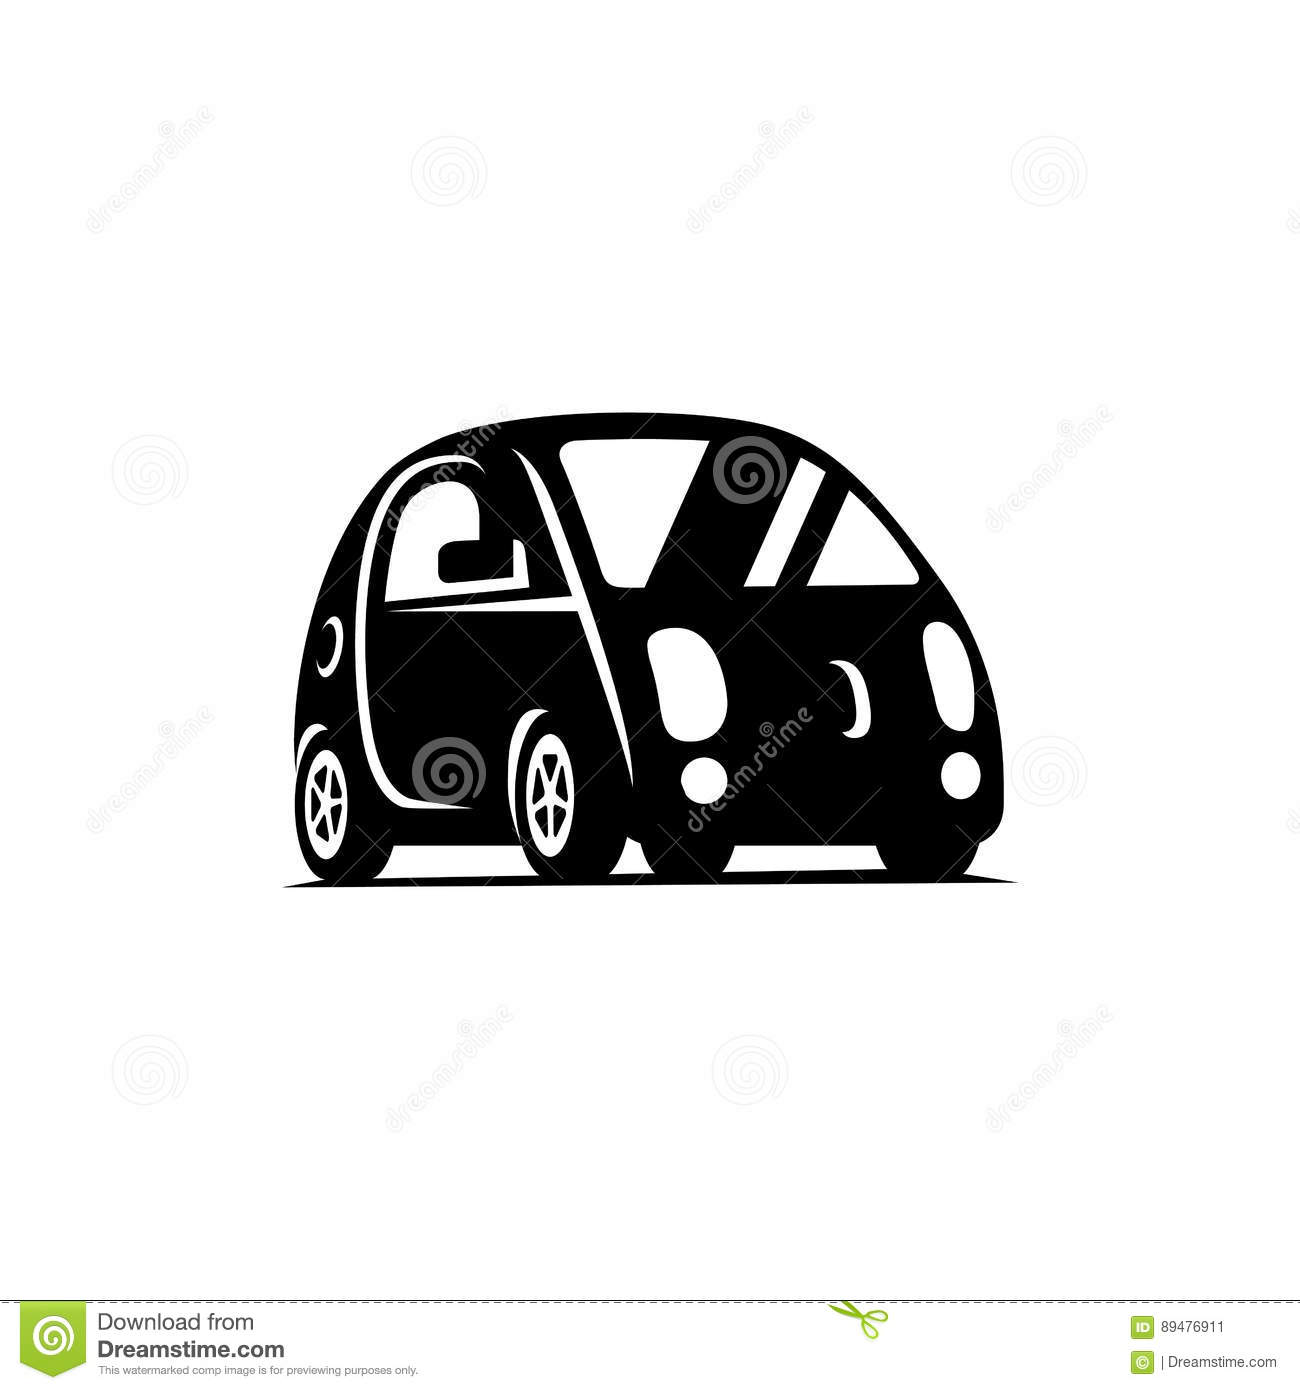 delf driving driverless vehicle car side view flat icon stock vector image 89476911. Black Bedroom Furniture Sets. Home Design Ideas